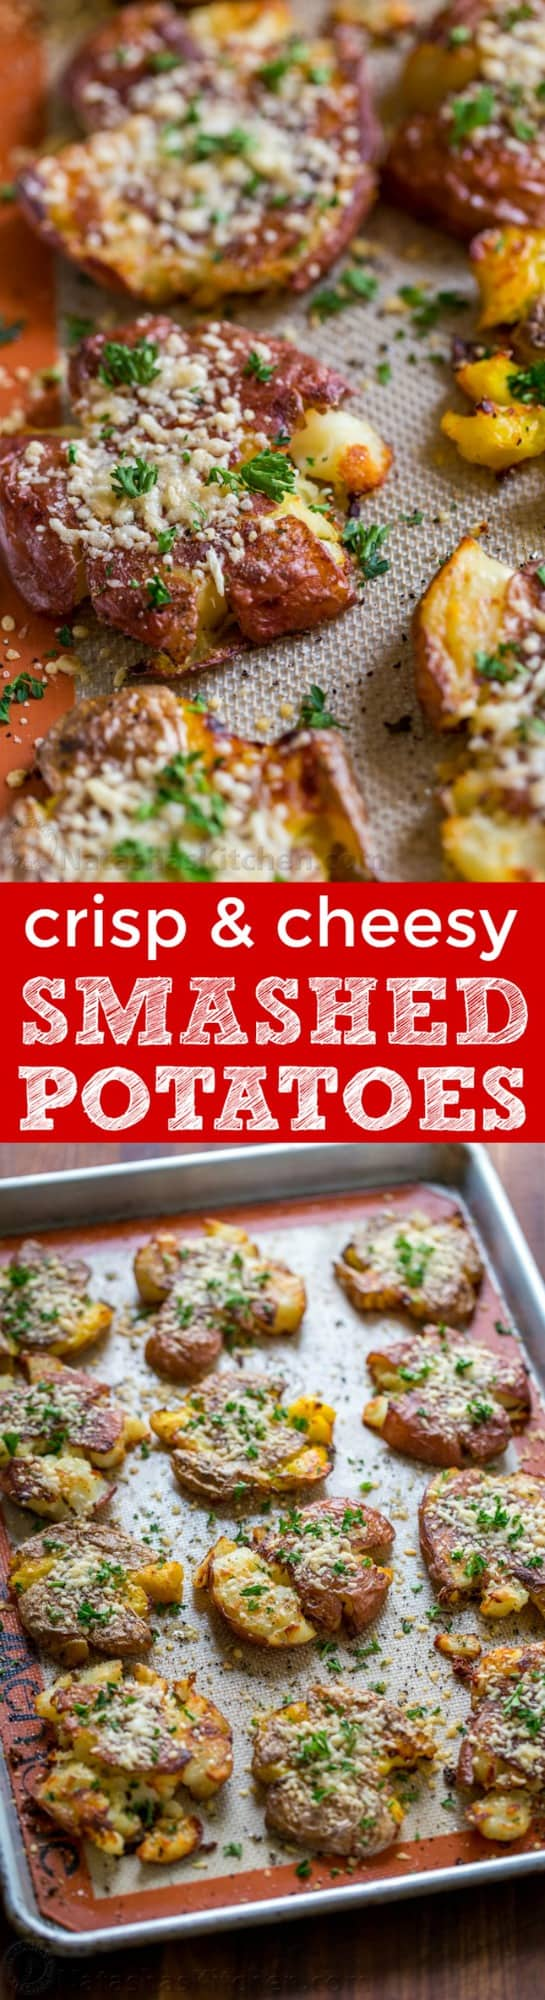 These cheesy smashed potatoes are crisp on the outside with a creamy center and irresistible cheesy crust. | natashaskitchen.com